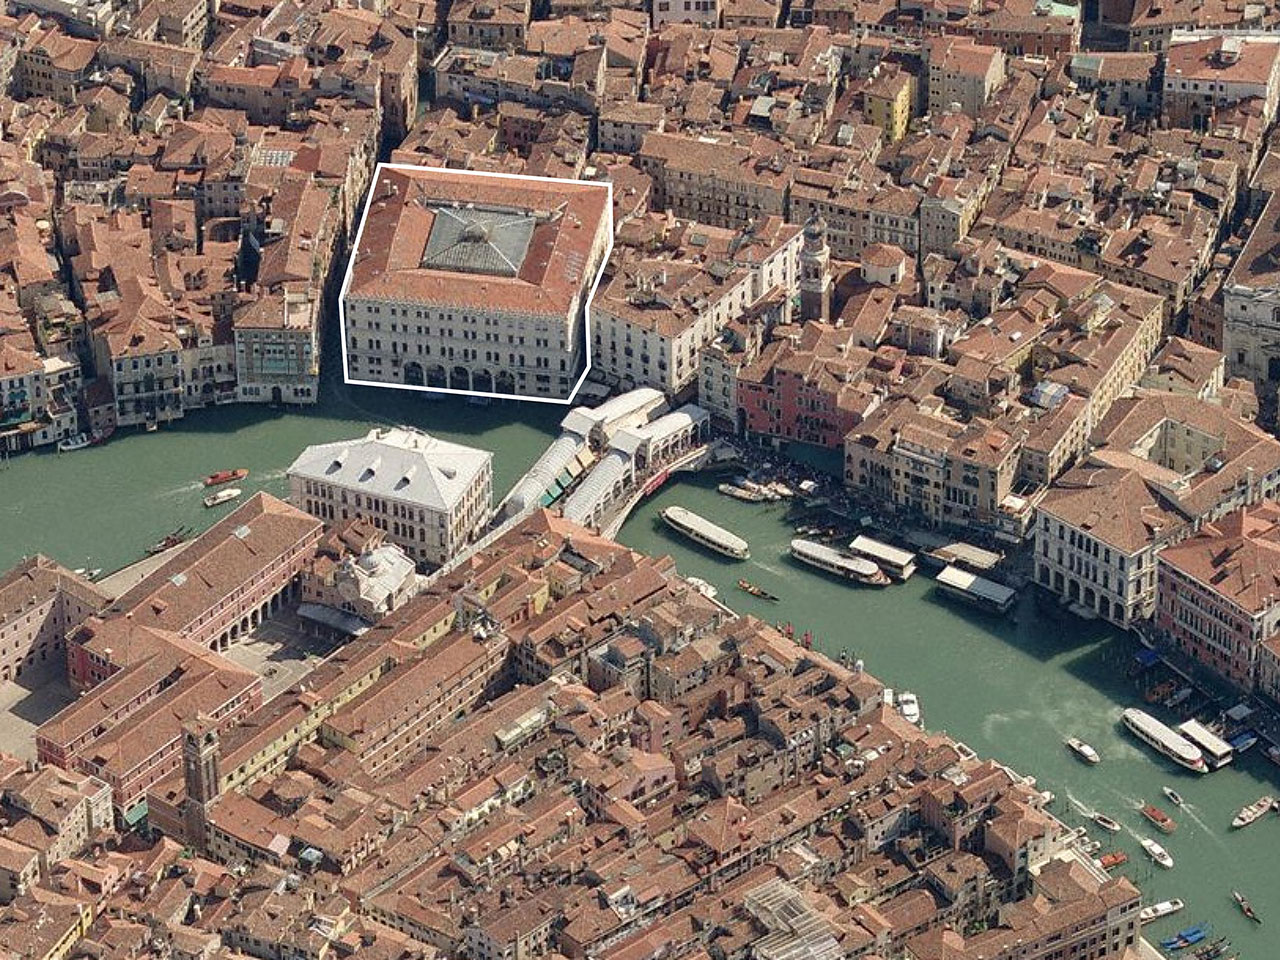 Il Fondaco dei Tedeschi, location next to the Rialto Bridge on the Grand Canal. Image courtesy OMA.